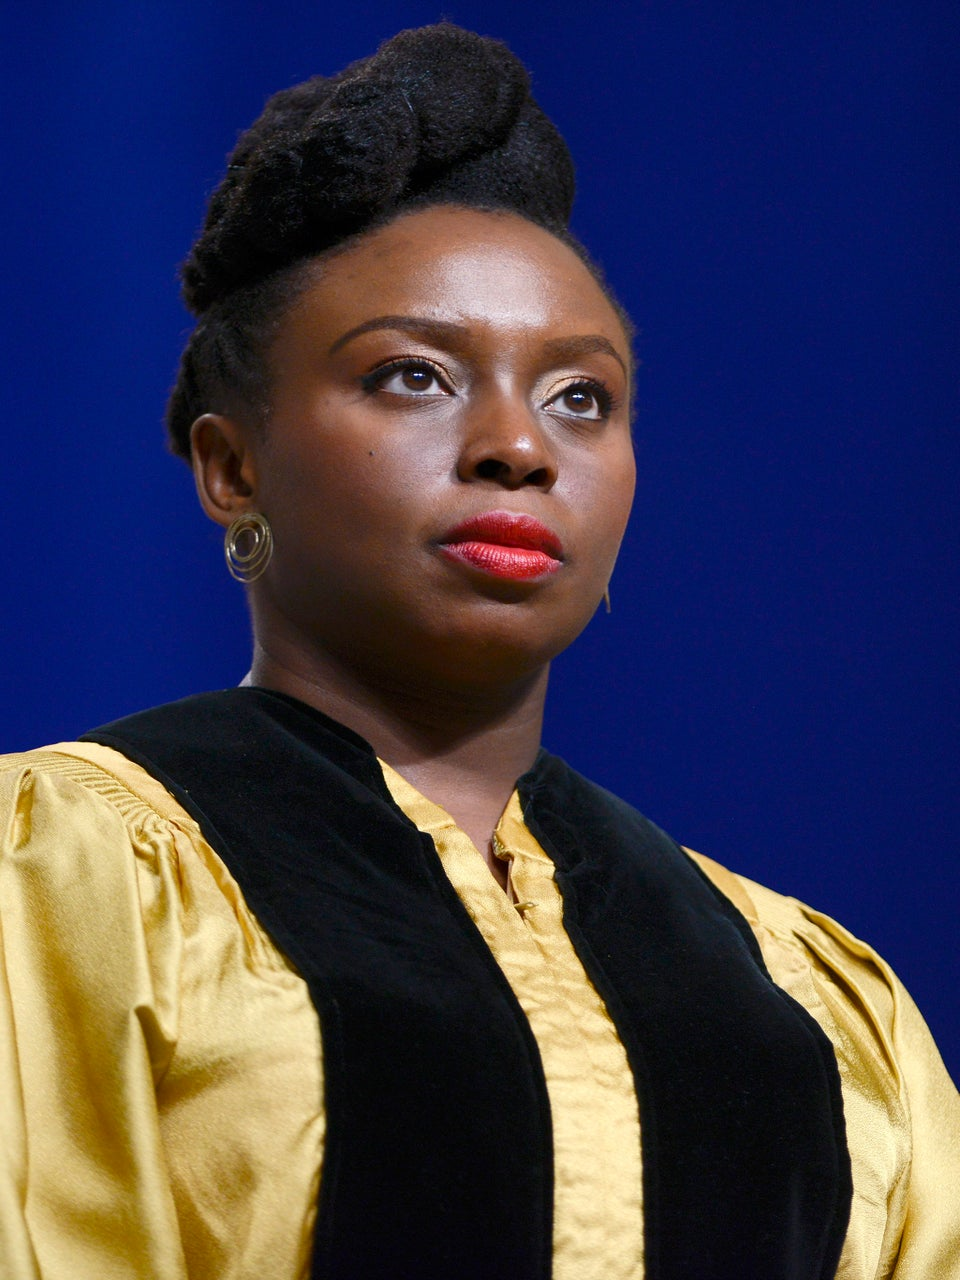 Chimamanda Adichie Shuts Down Trump Supporter Who Said The President Elect Is Not Racist